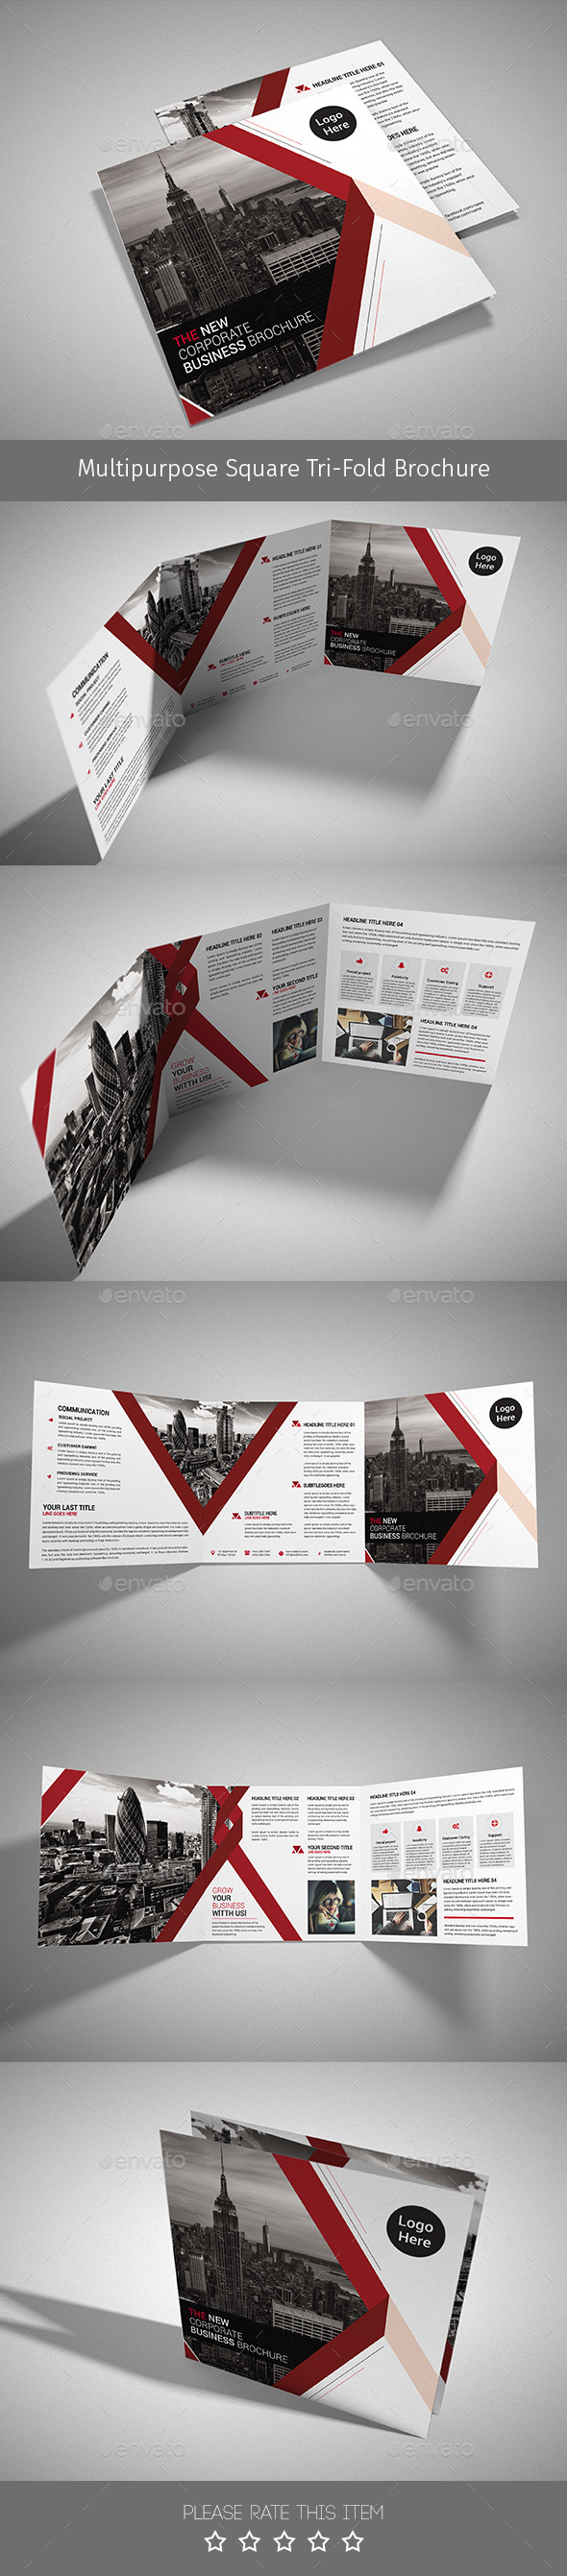 Corporate Tri-fold Square Brochure 02 - Corporate Brochures